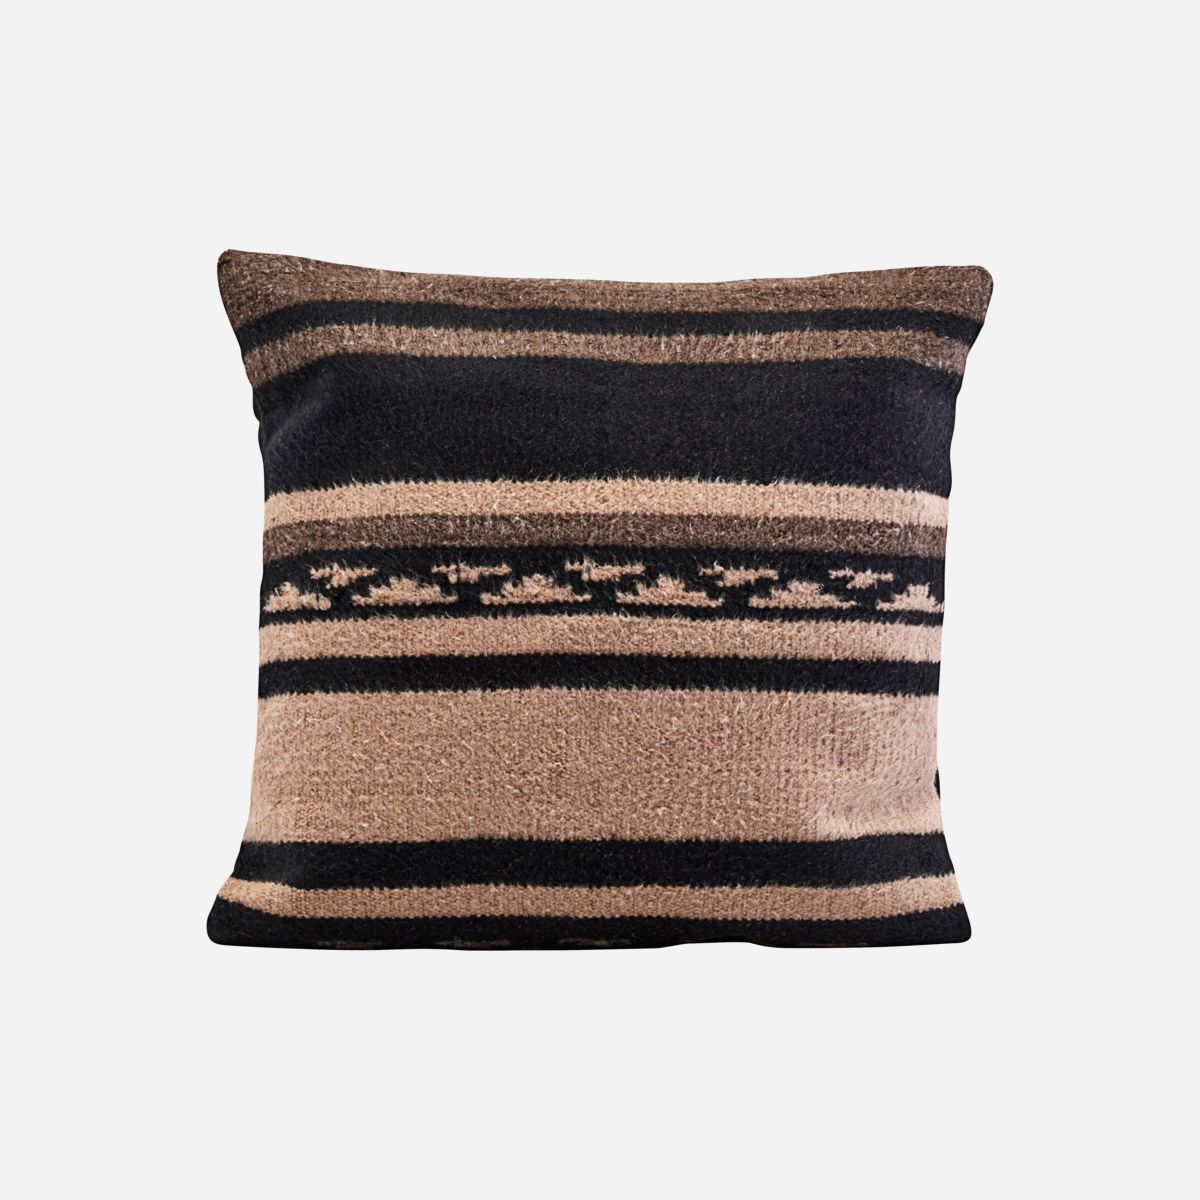 Trouva House Doctor Cushion